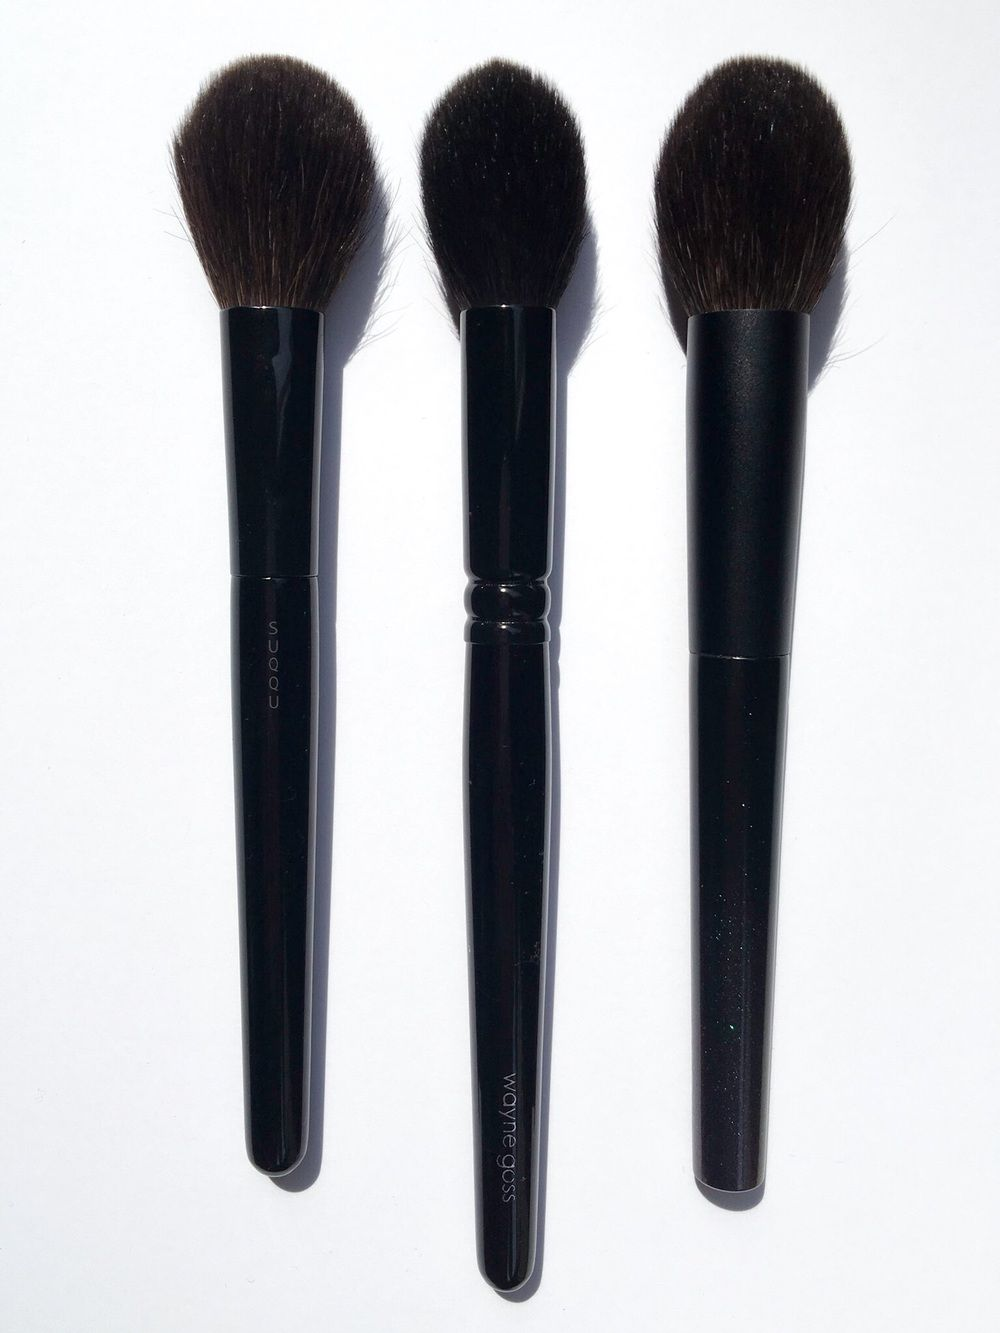 Oct 10 Brush Comparison: Suqqu Cheek Brush, Wayne Goss 02